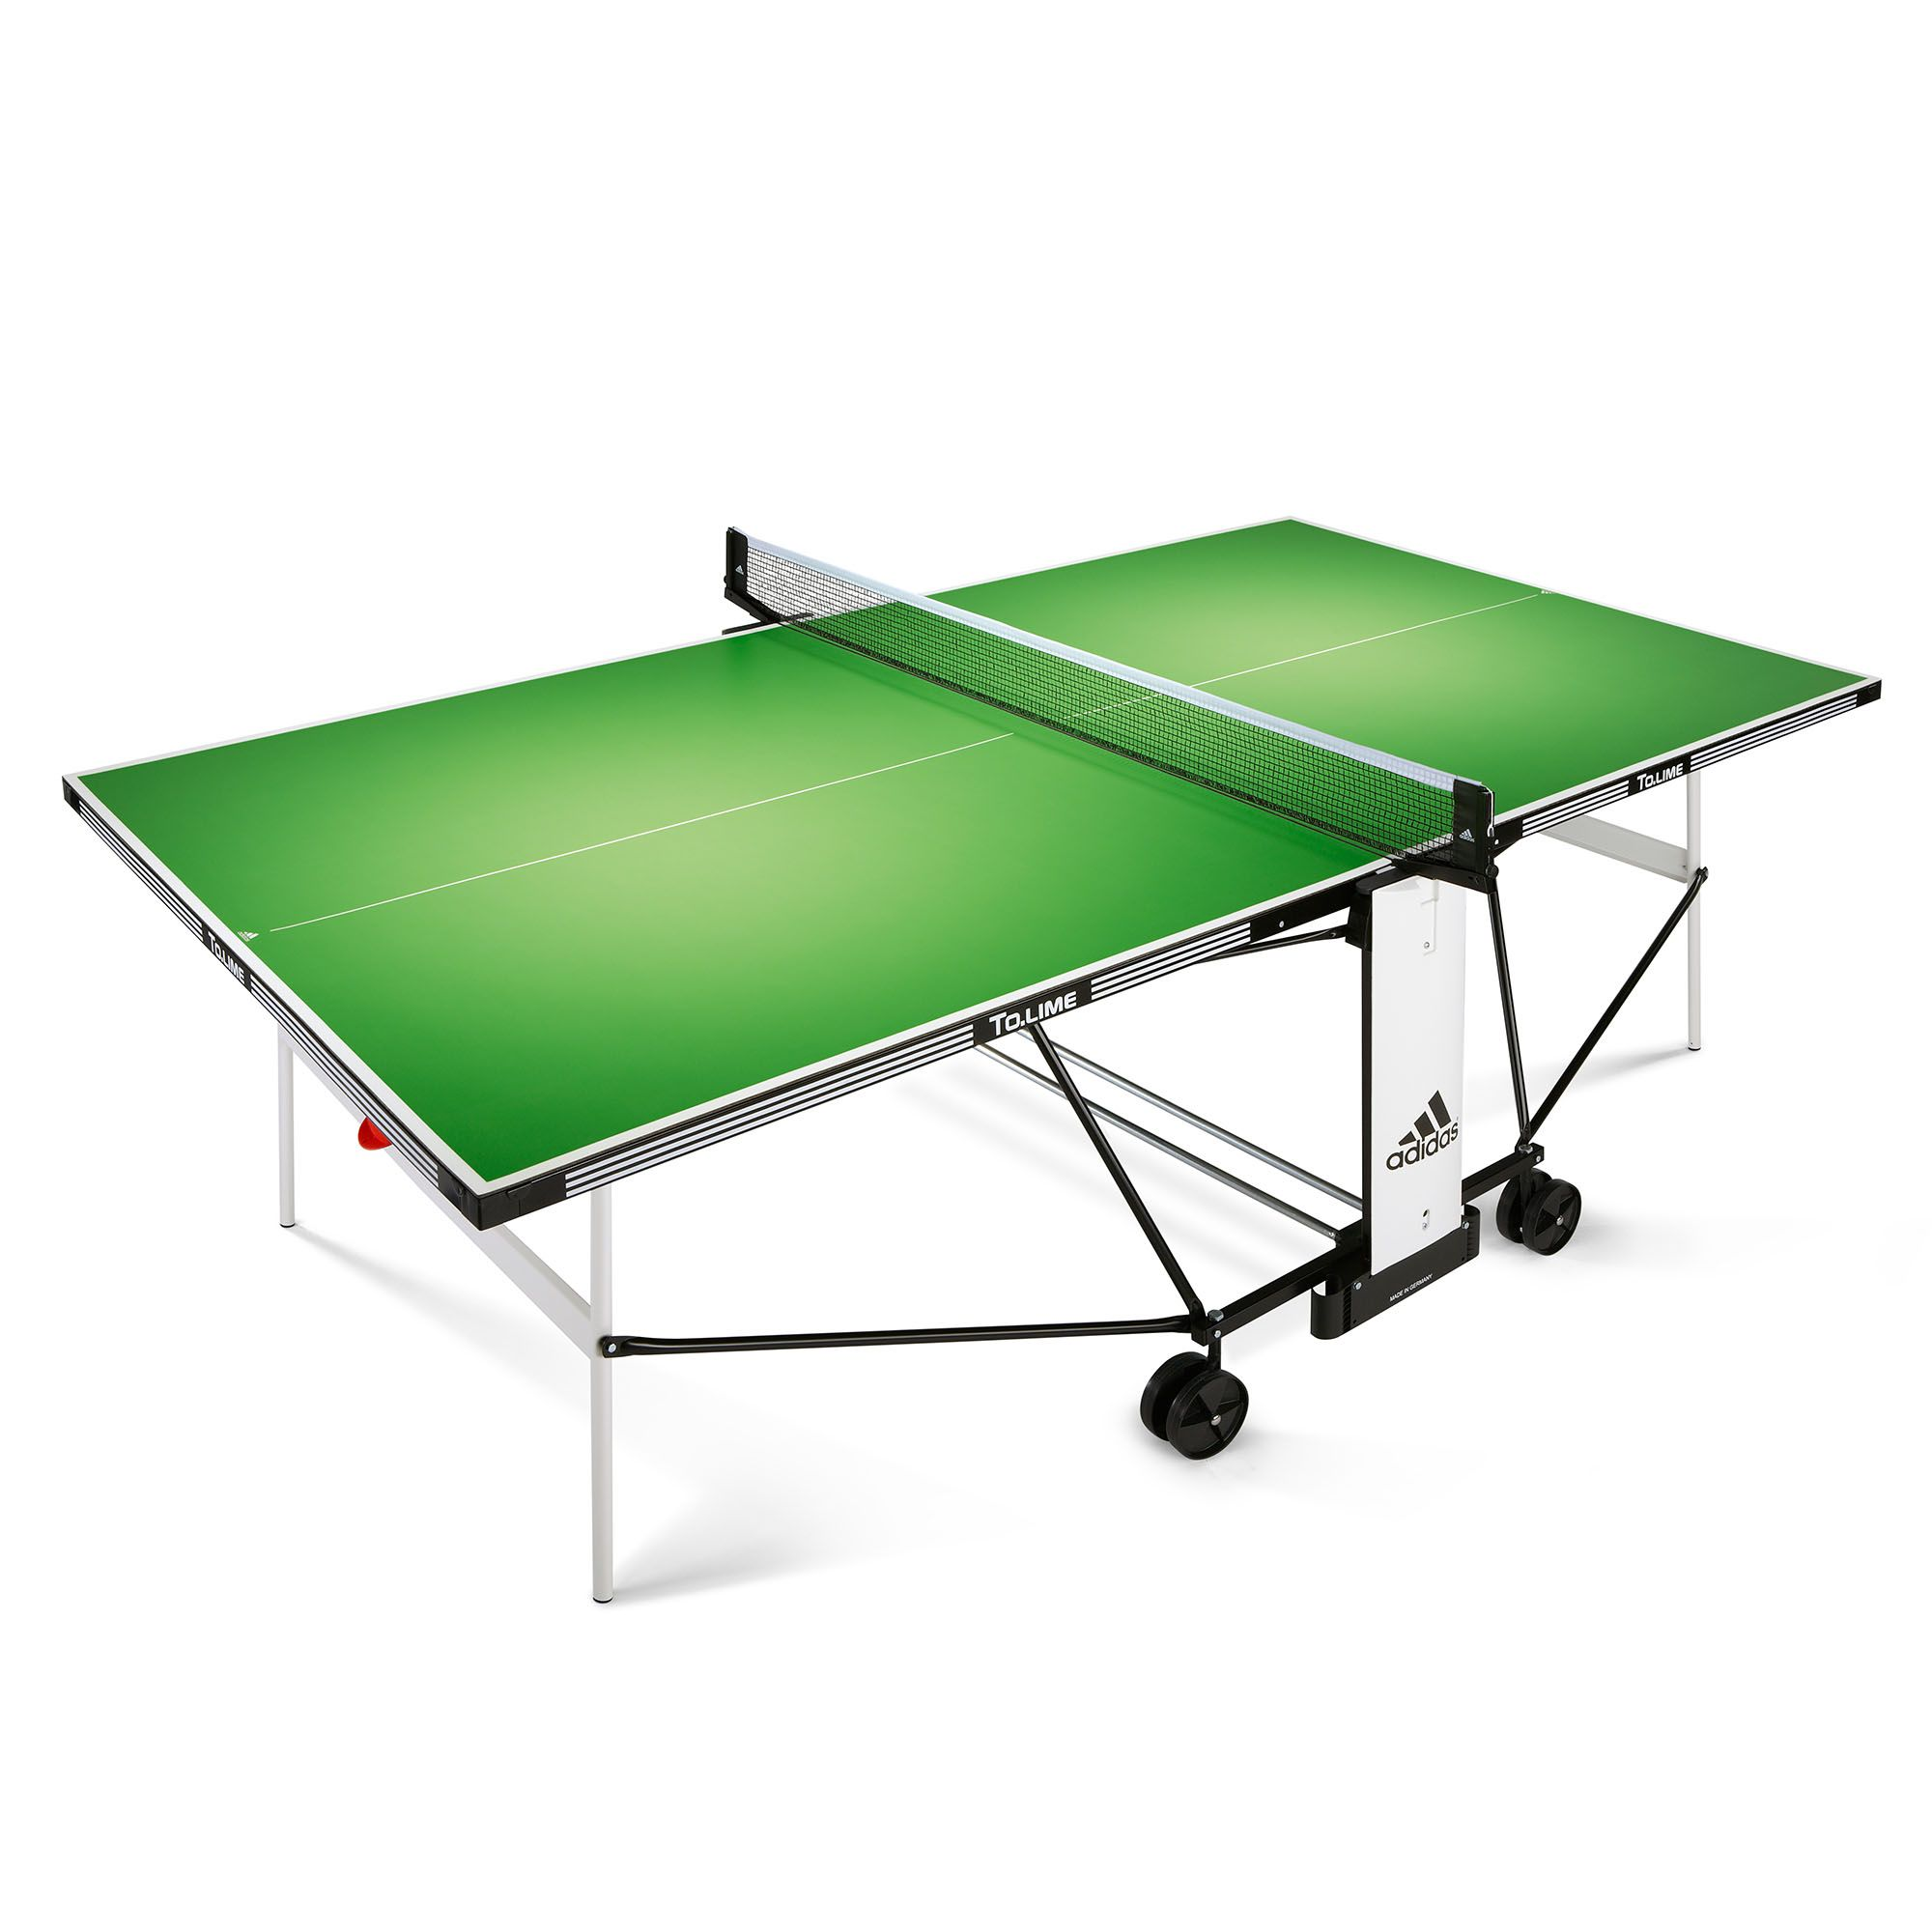 Adidas to lime outdoor table tennis table - Weatherproof table tennis table ...